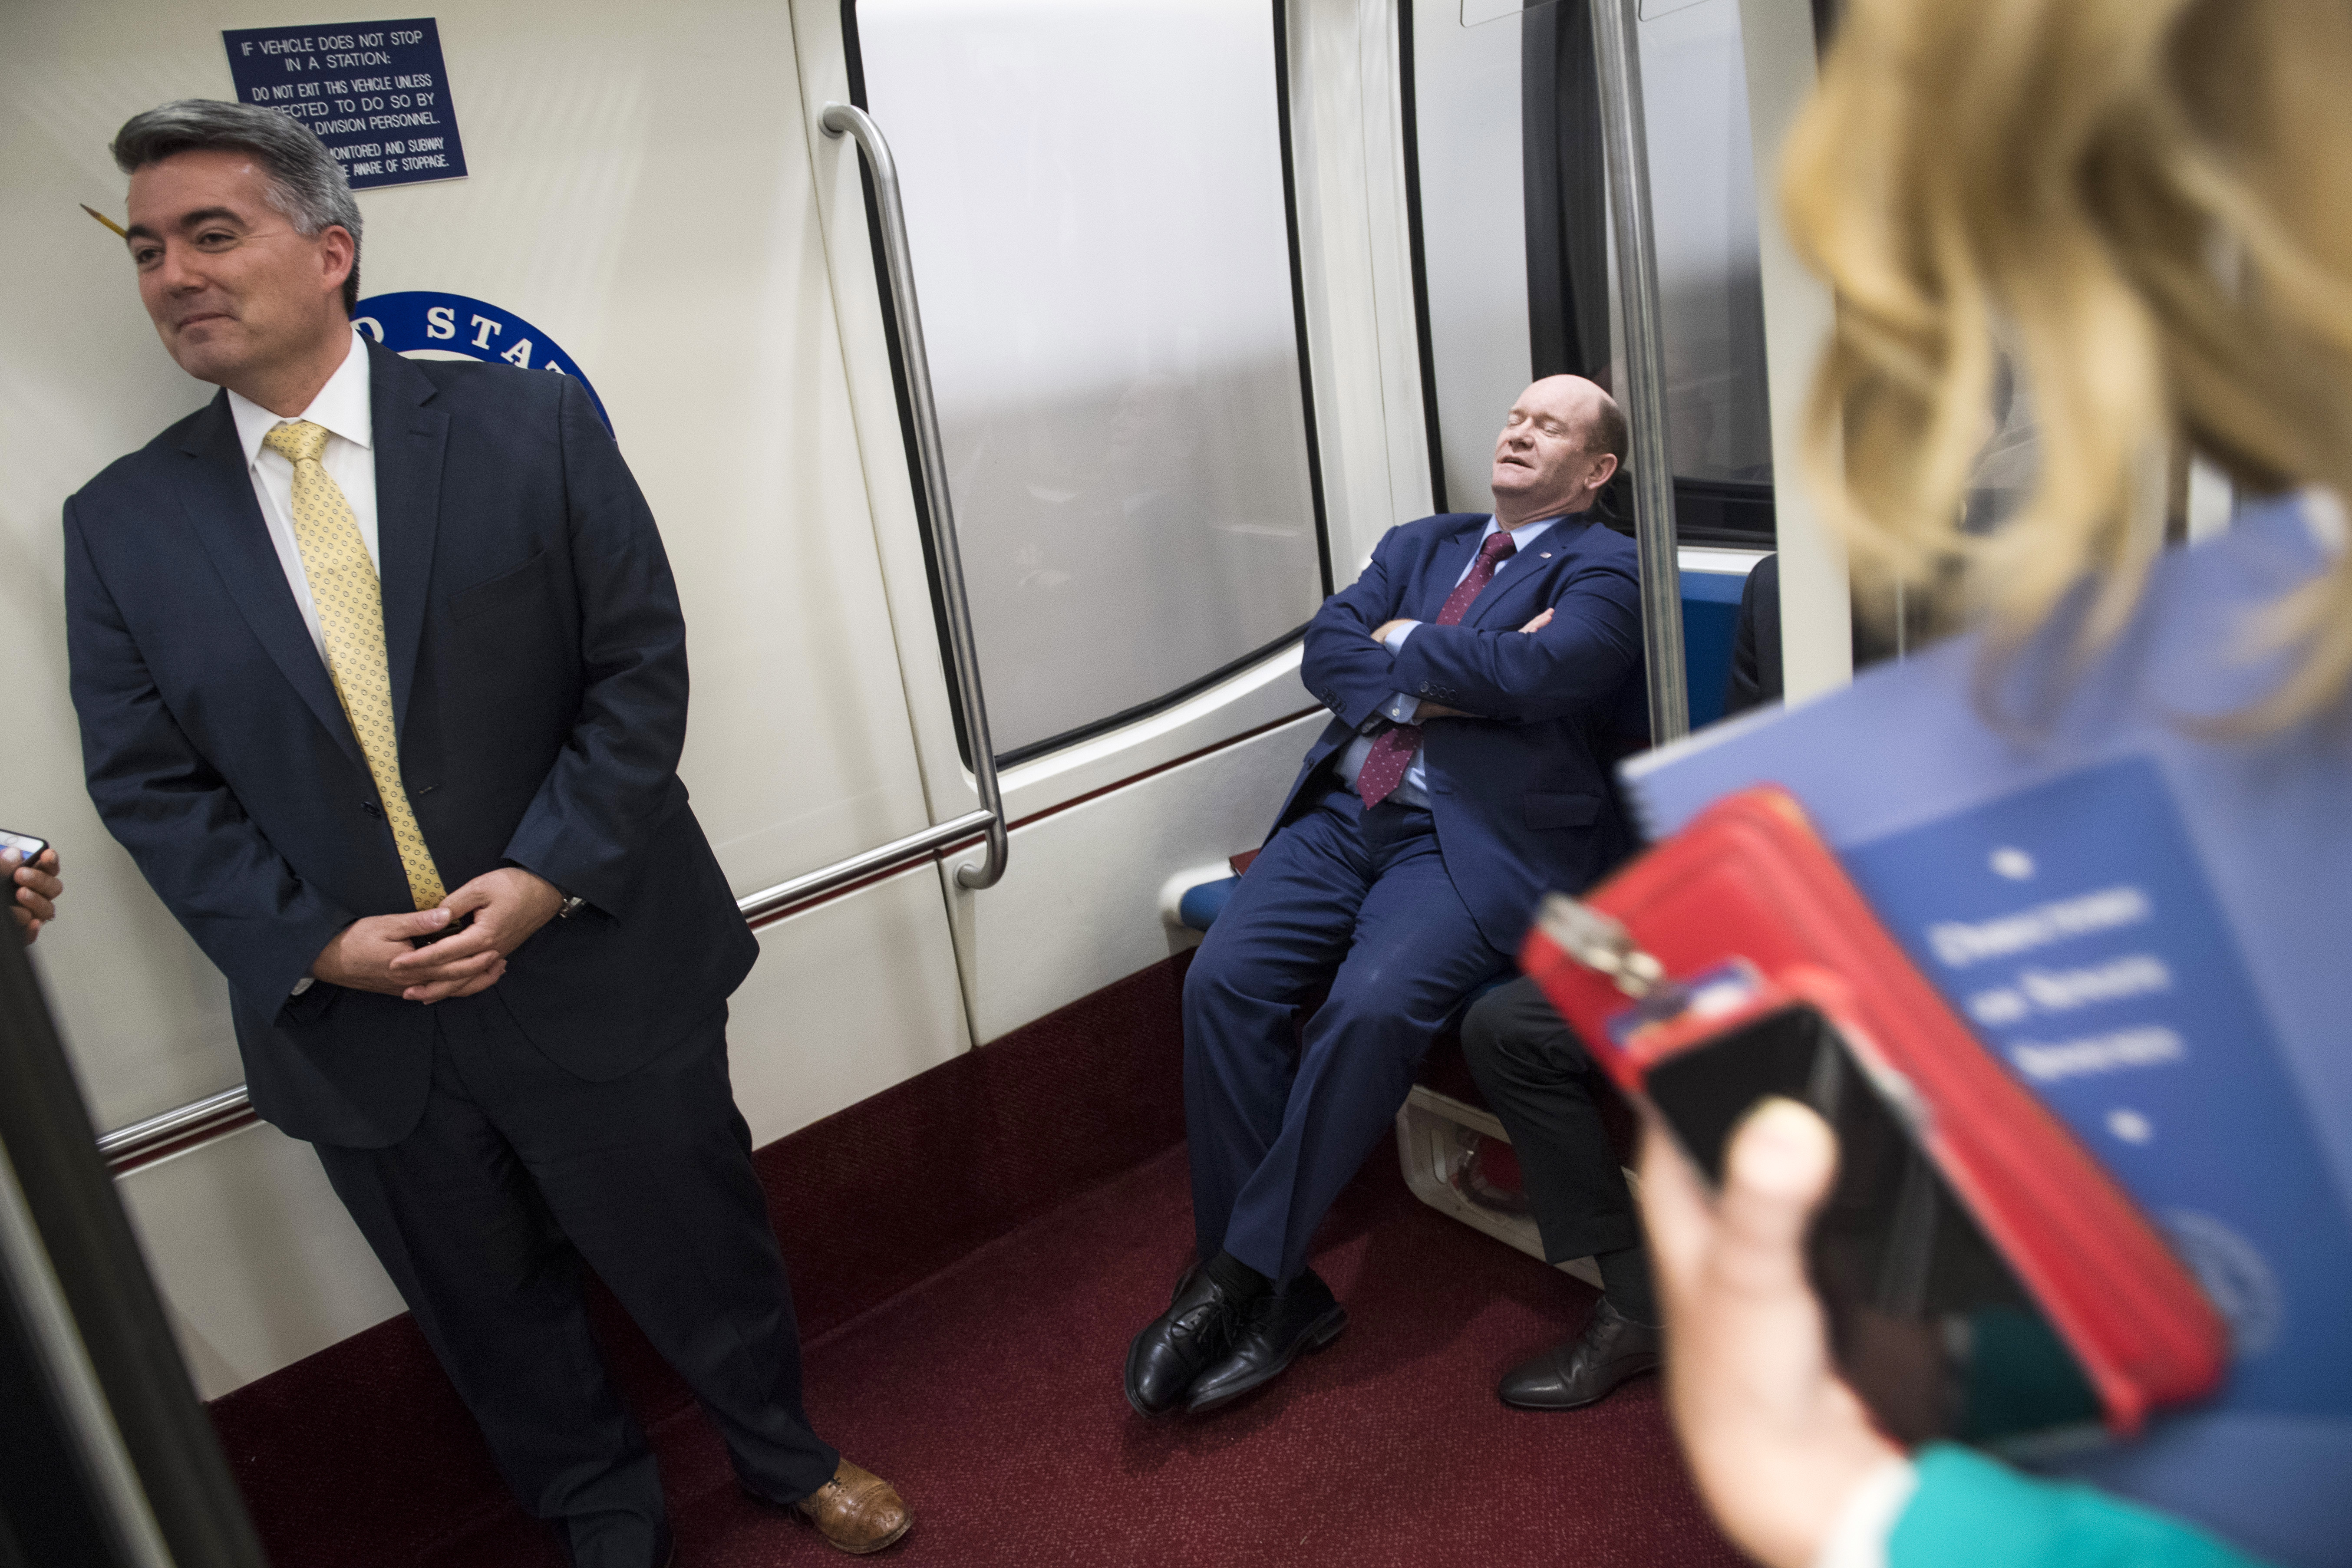 UNITED STATES - JUNE 5: Sens. Chris Coons, D-Del., right, and Cory Gardner, R-Colo., board the senate subway after a vote in the Capitol on Wednesday, June 5, 2019. (Photo By Tom Williams/CQ Roll Call)